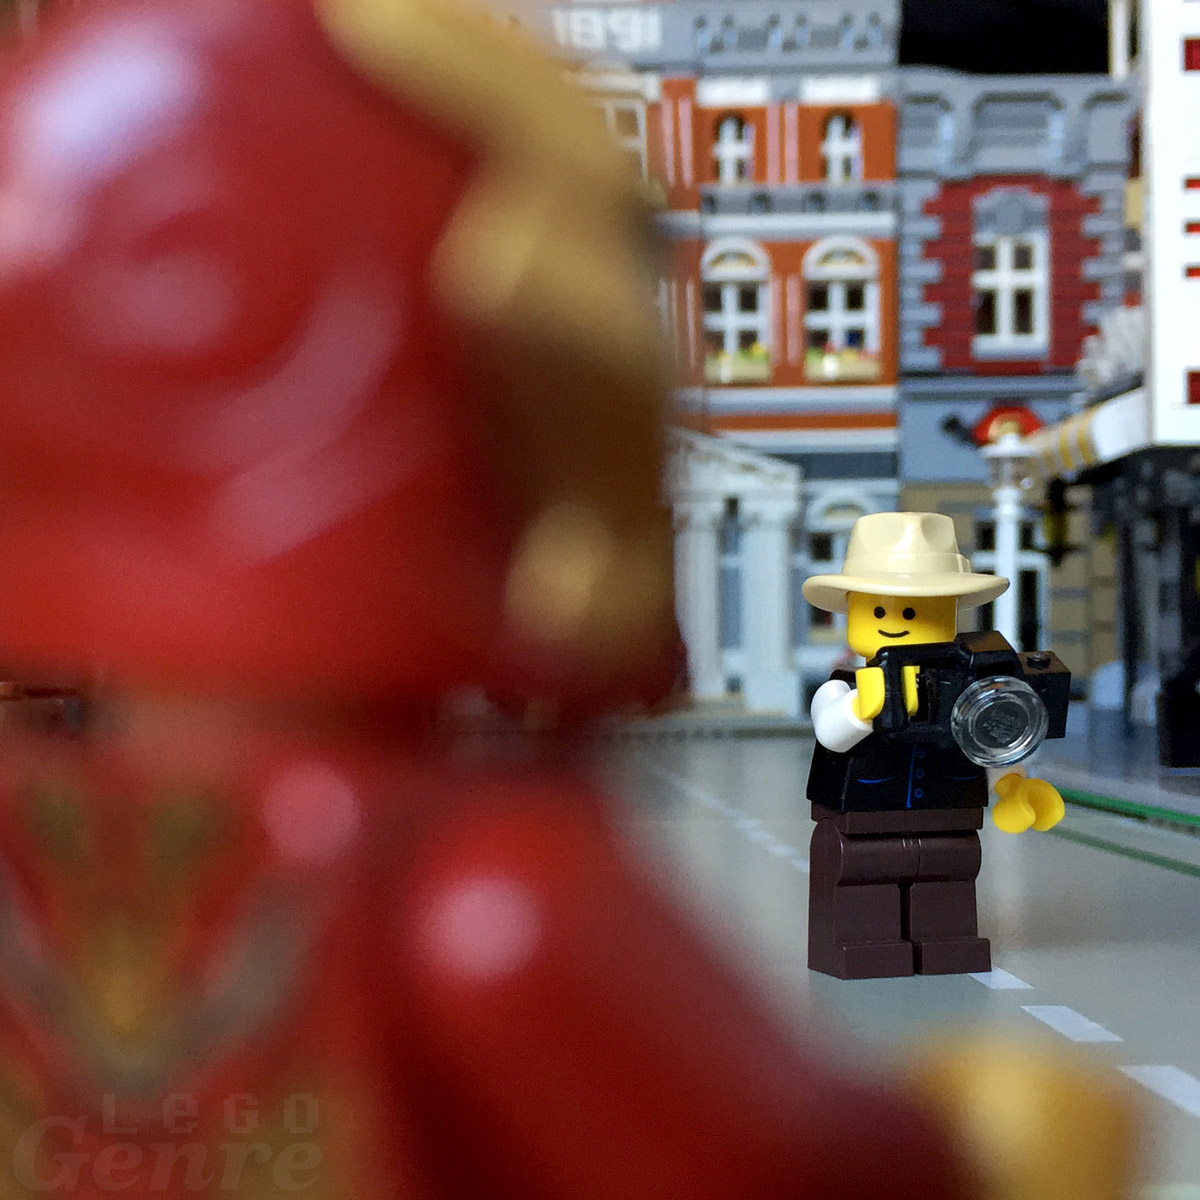 LegoGenre: It's Iron Man, quick get a picture!